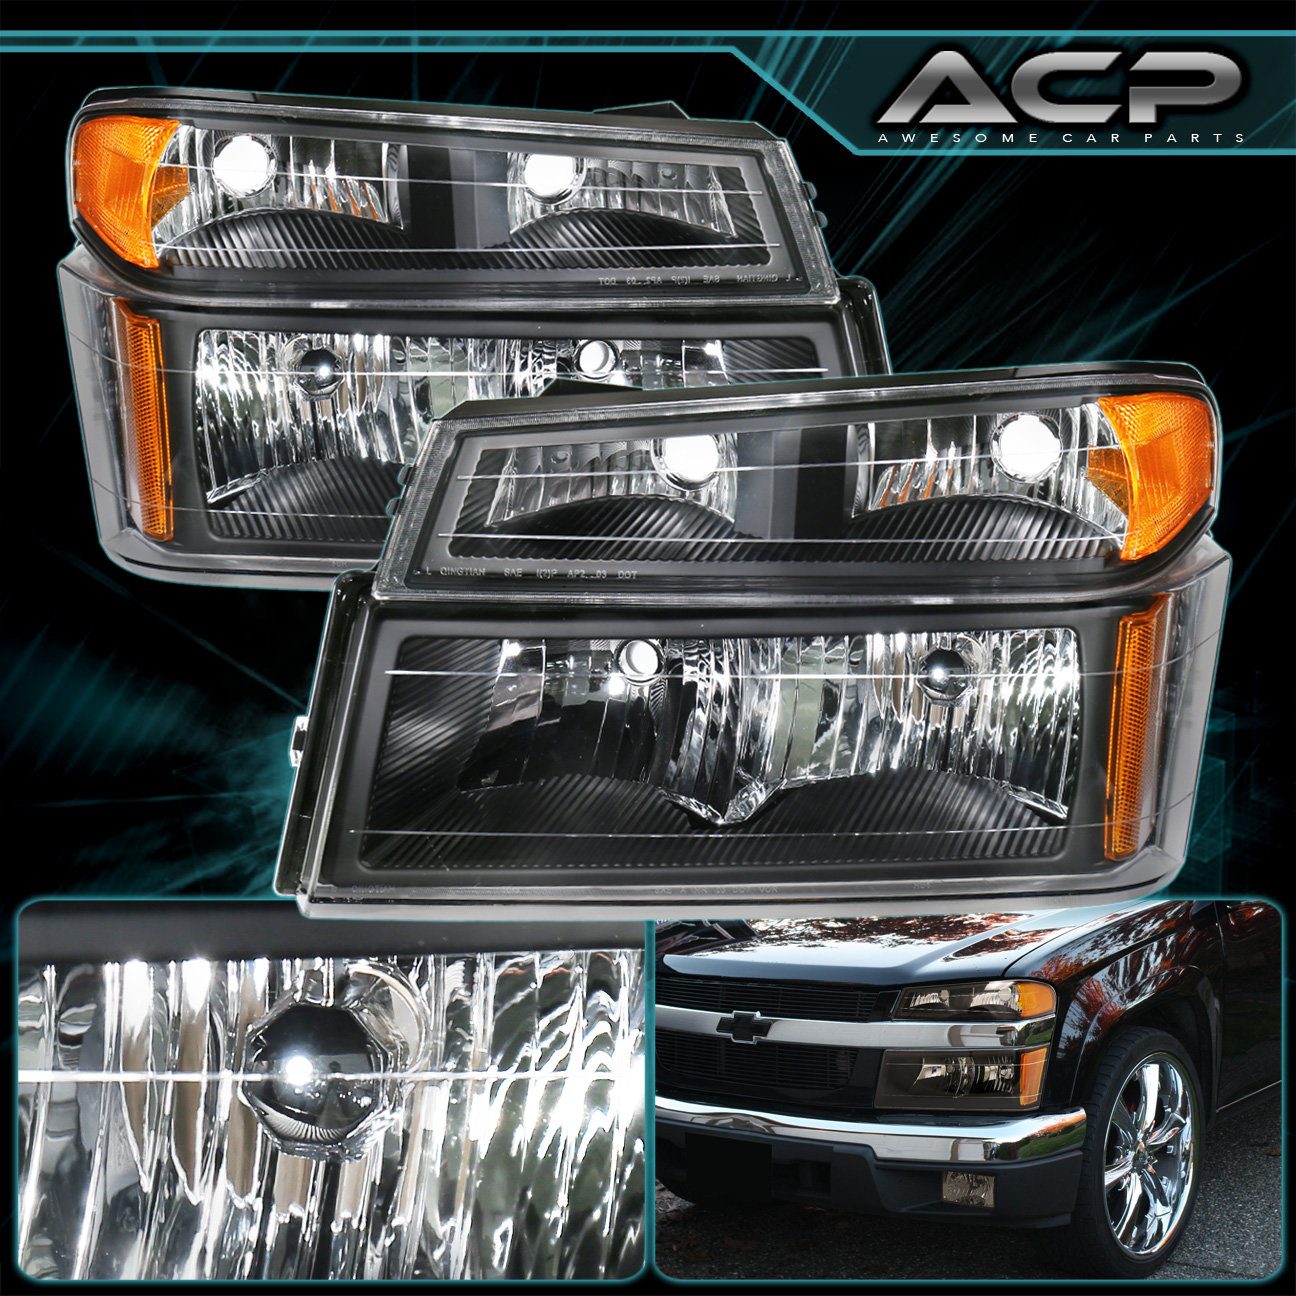 Details About Black Housing Headlight Per Corner Amber For 04 12 Chevy Colorado Gmc Canyon